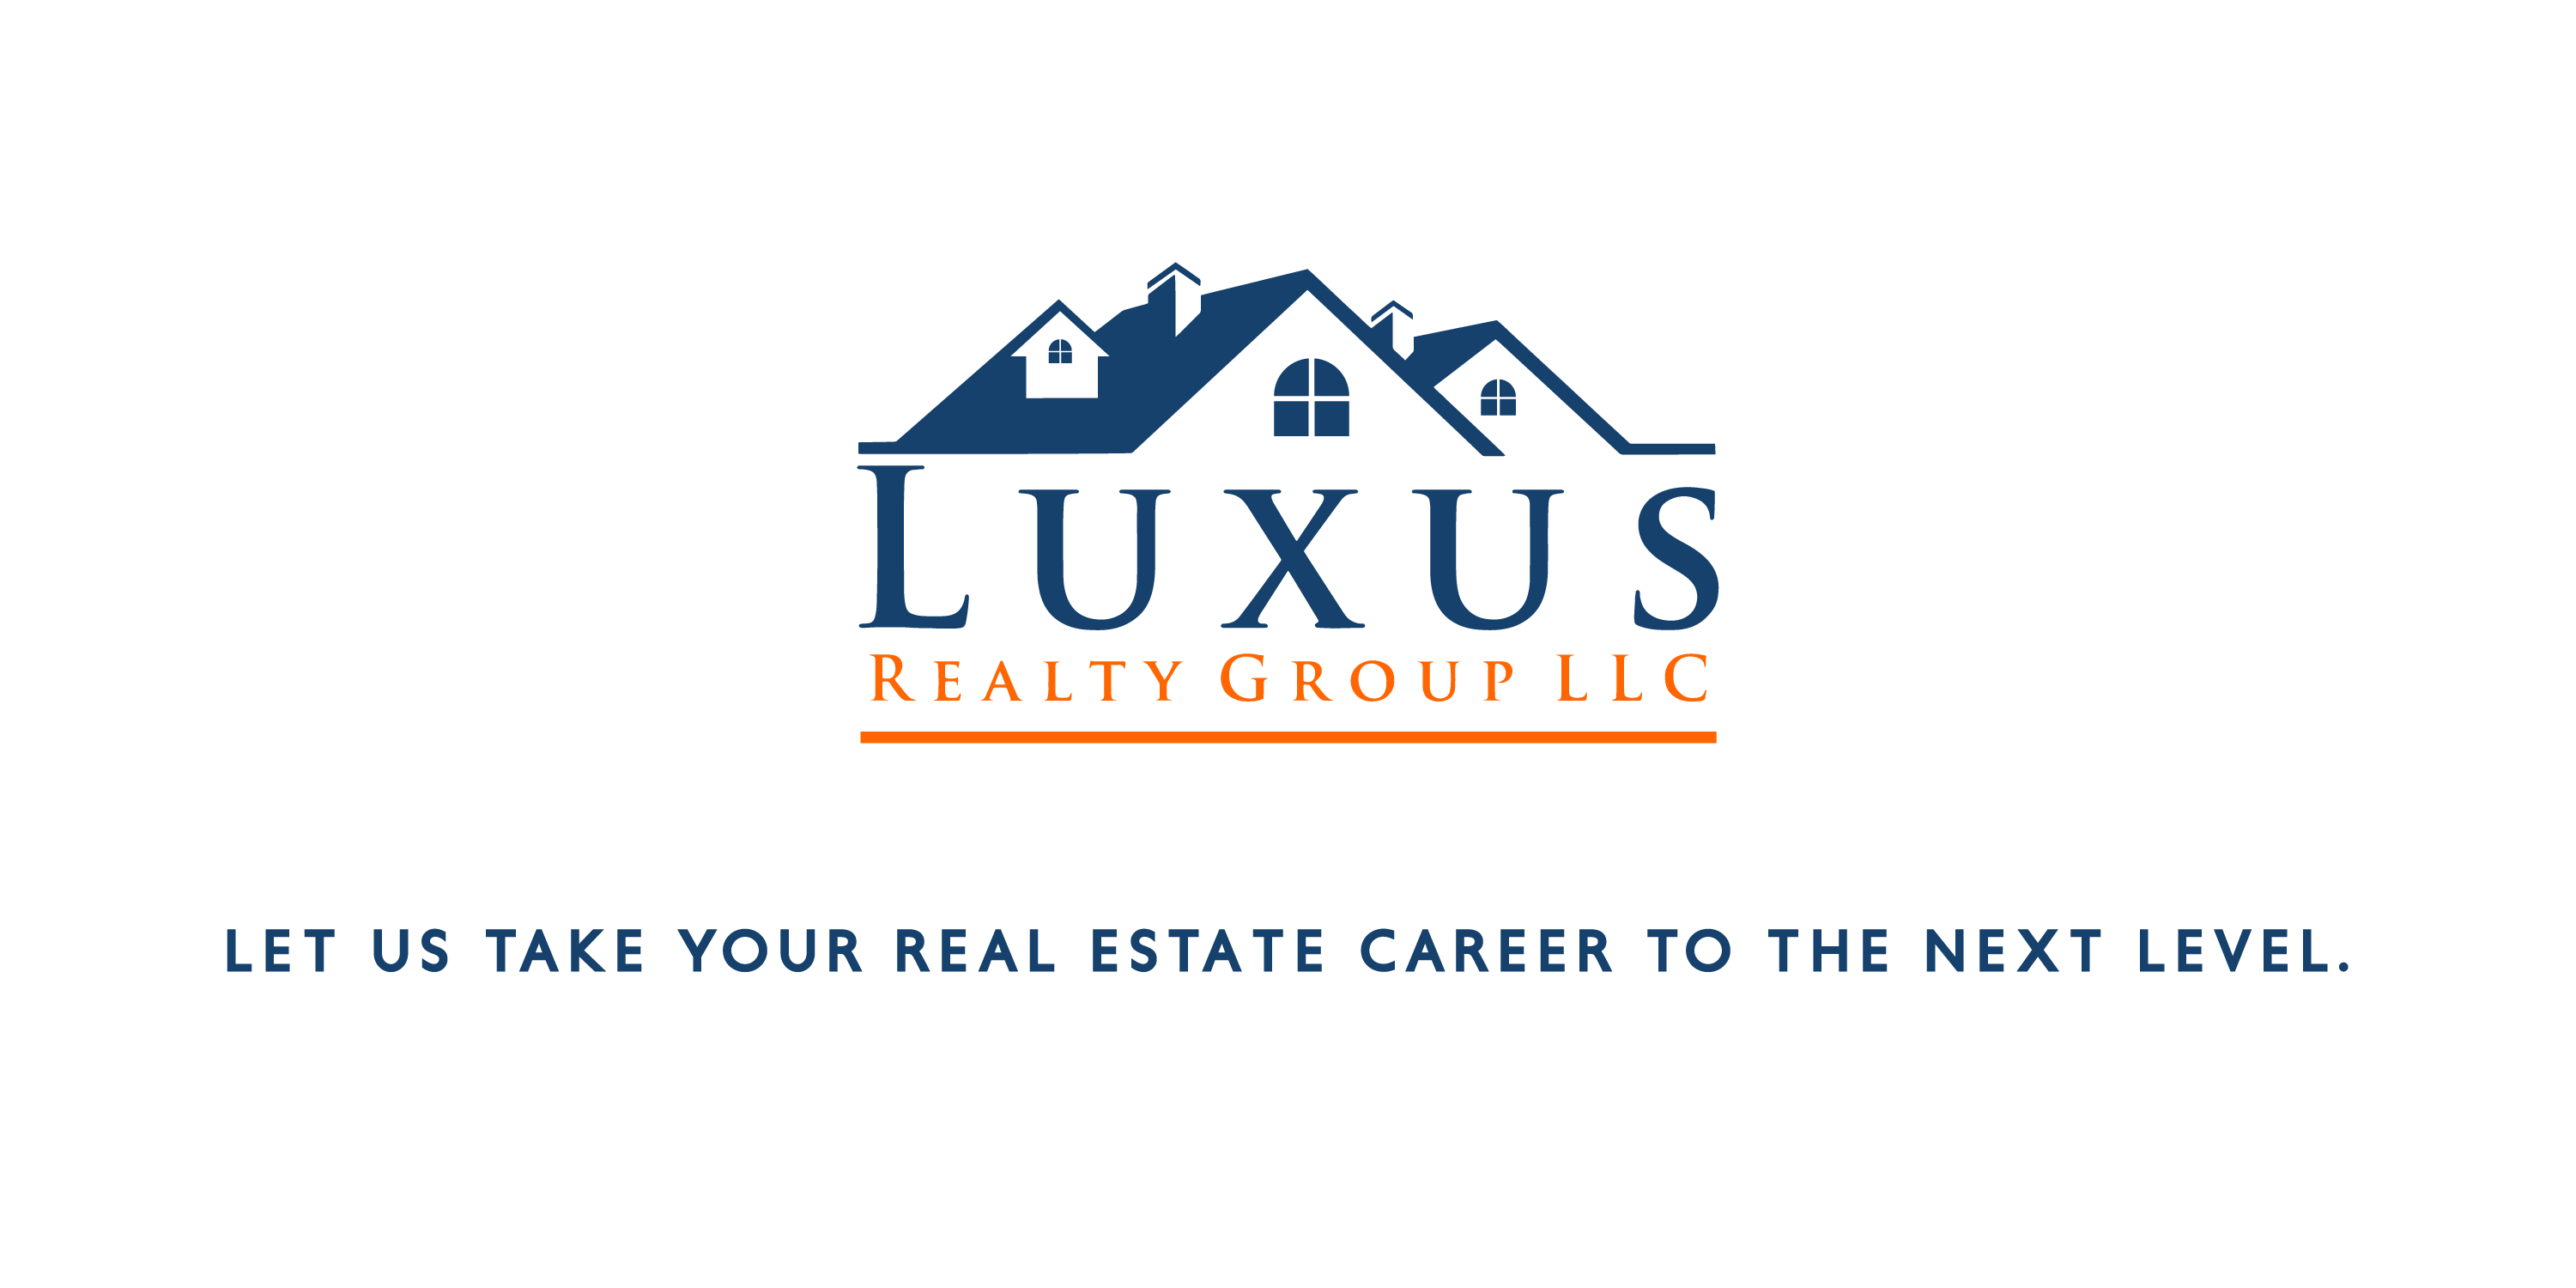 Top Miami Real Estate Firm Luxus Realty Group Announces The Opening of Its Four New Locations with Pristine Properties